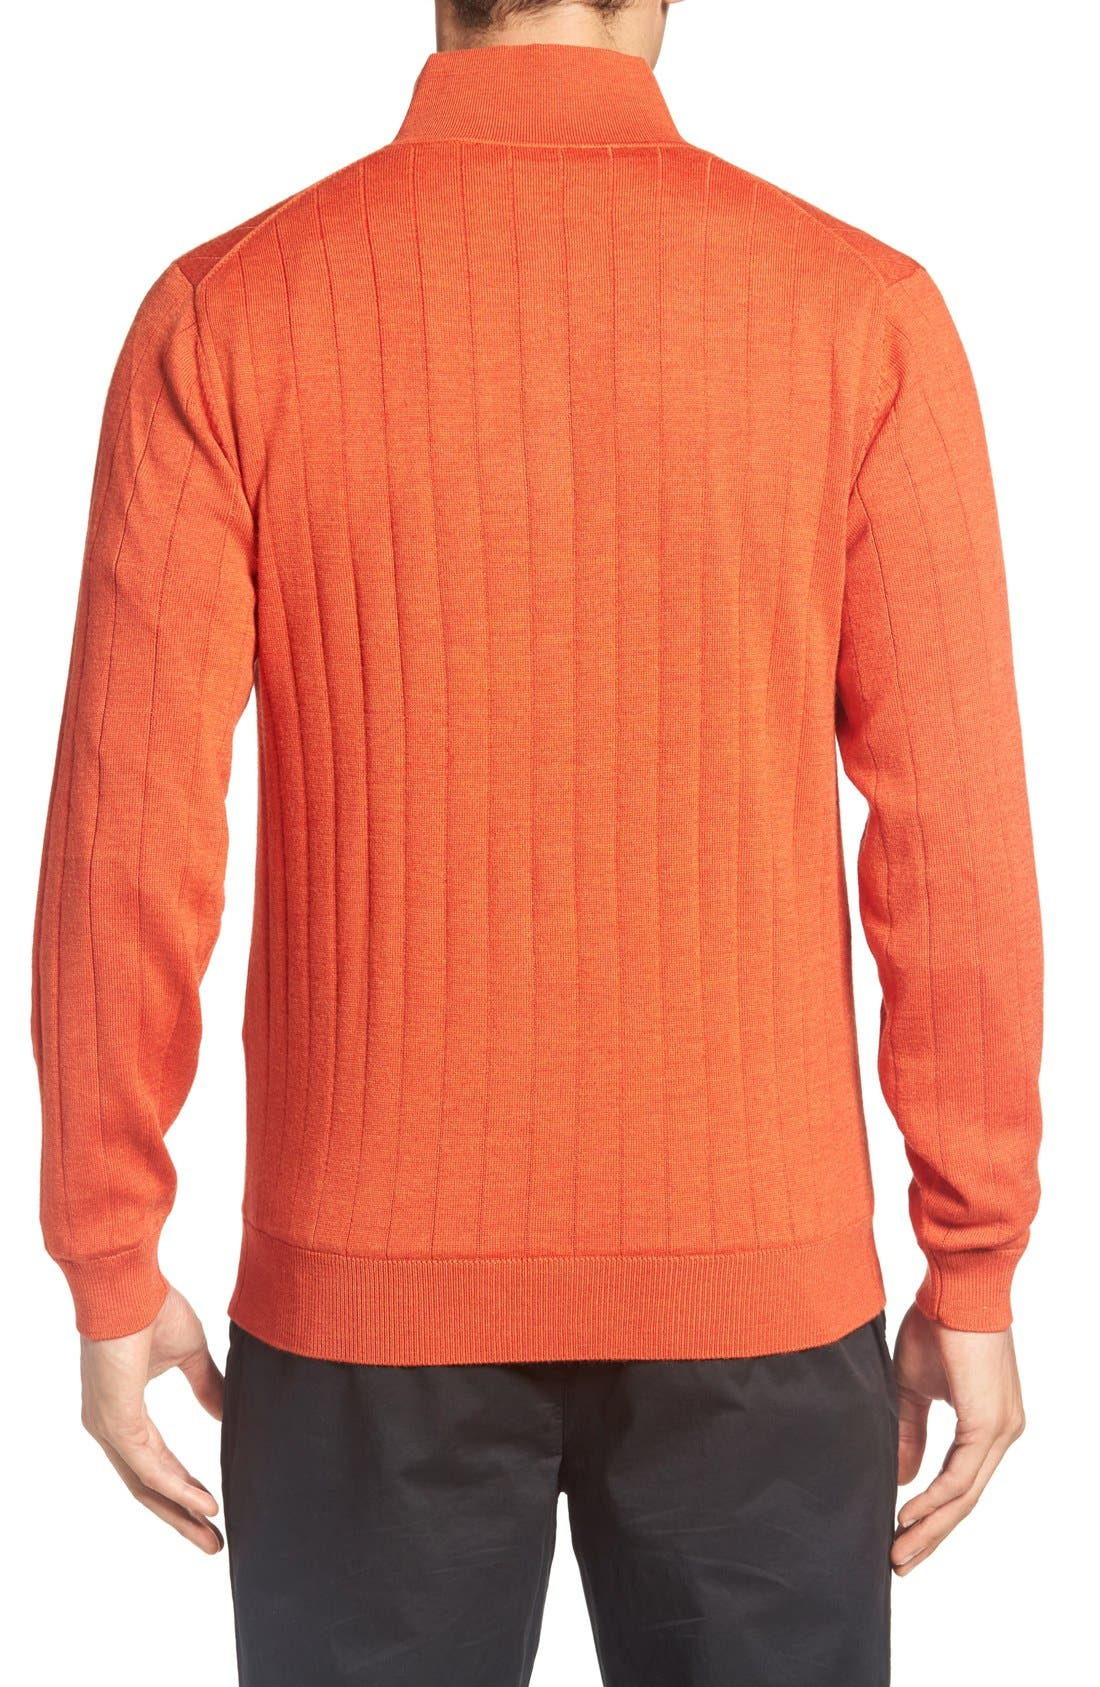 Alternate Image 2  - Bobby Jones Windproof Merino Wool Quarter Zip Sweater